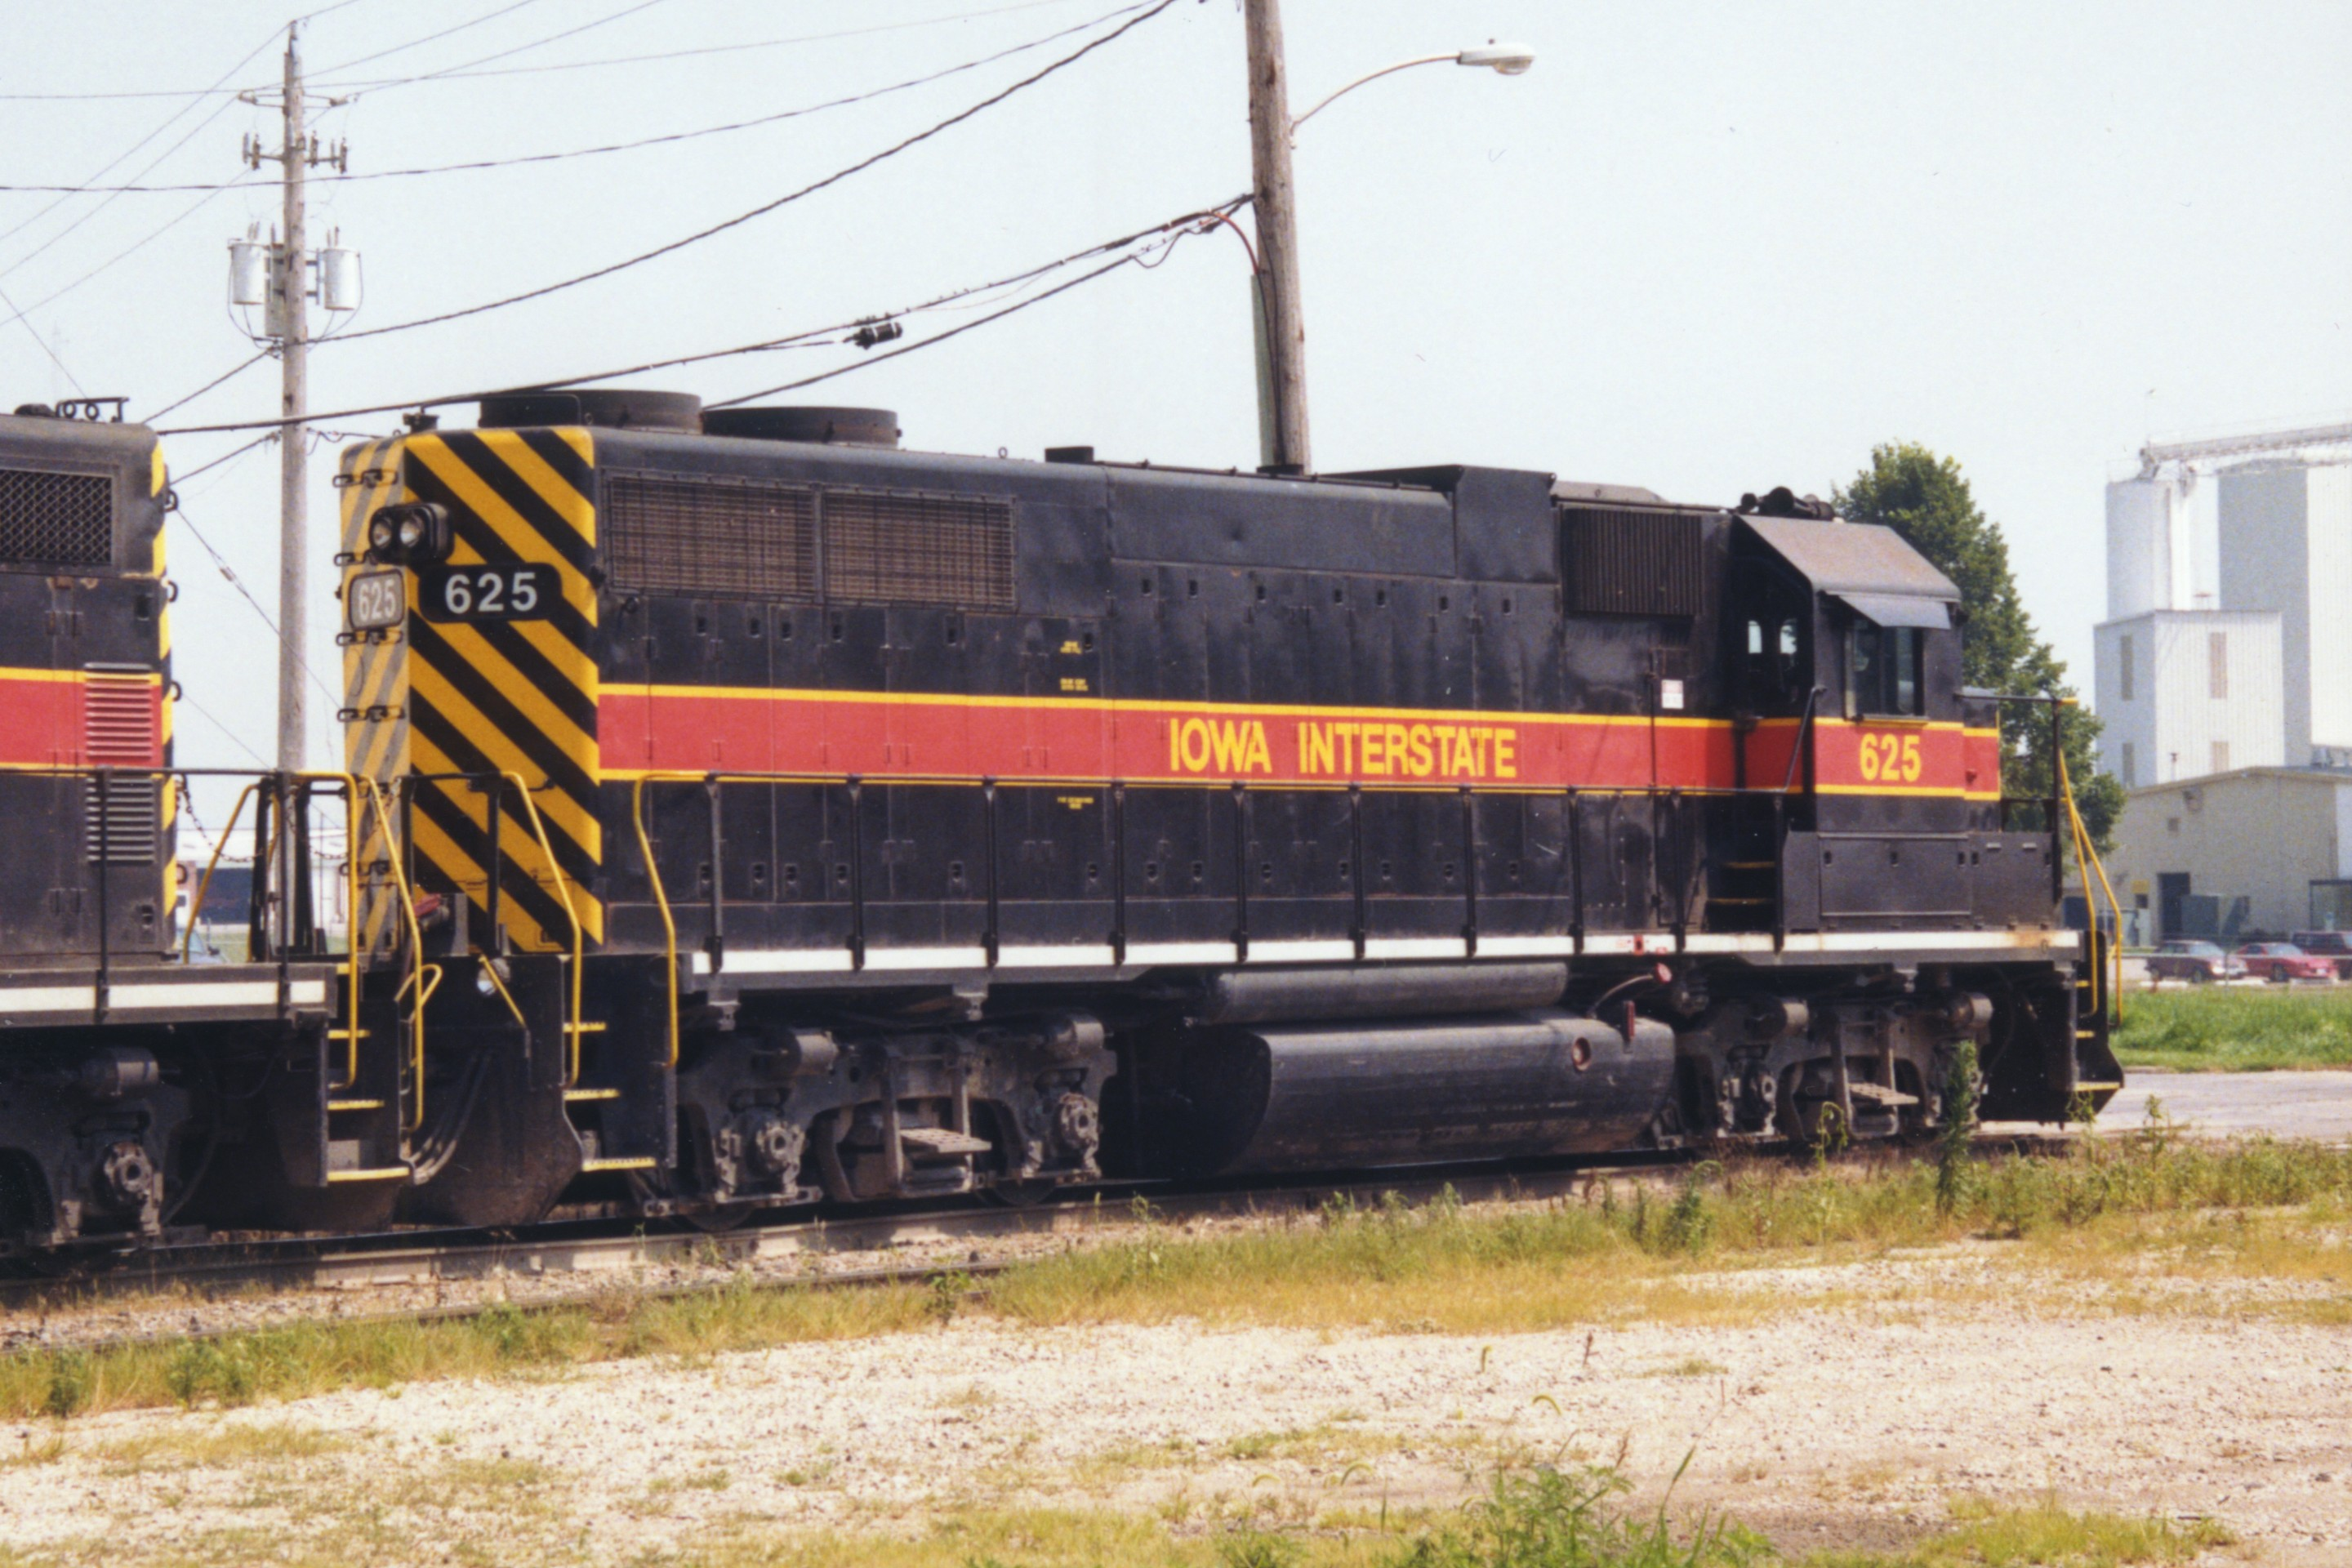 IAIS 625 at Altoona, IA on 13-Jul-1998